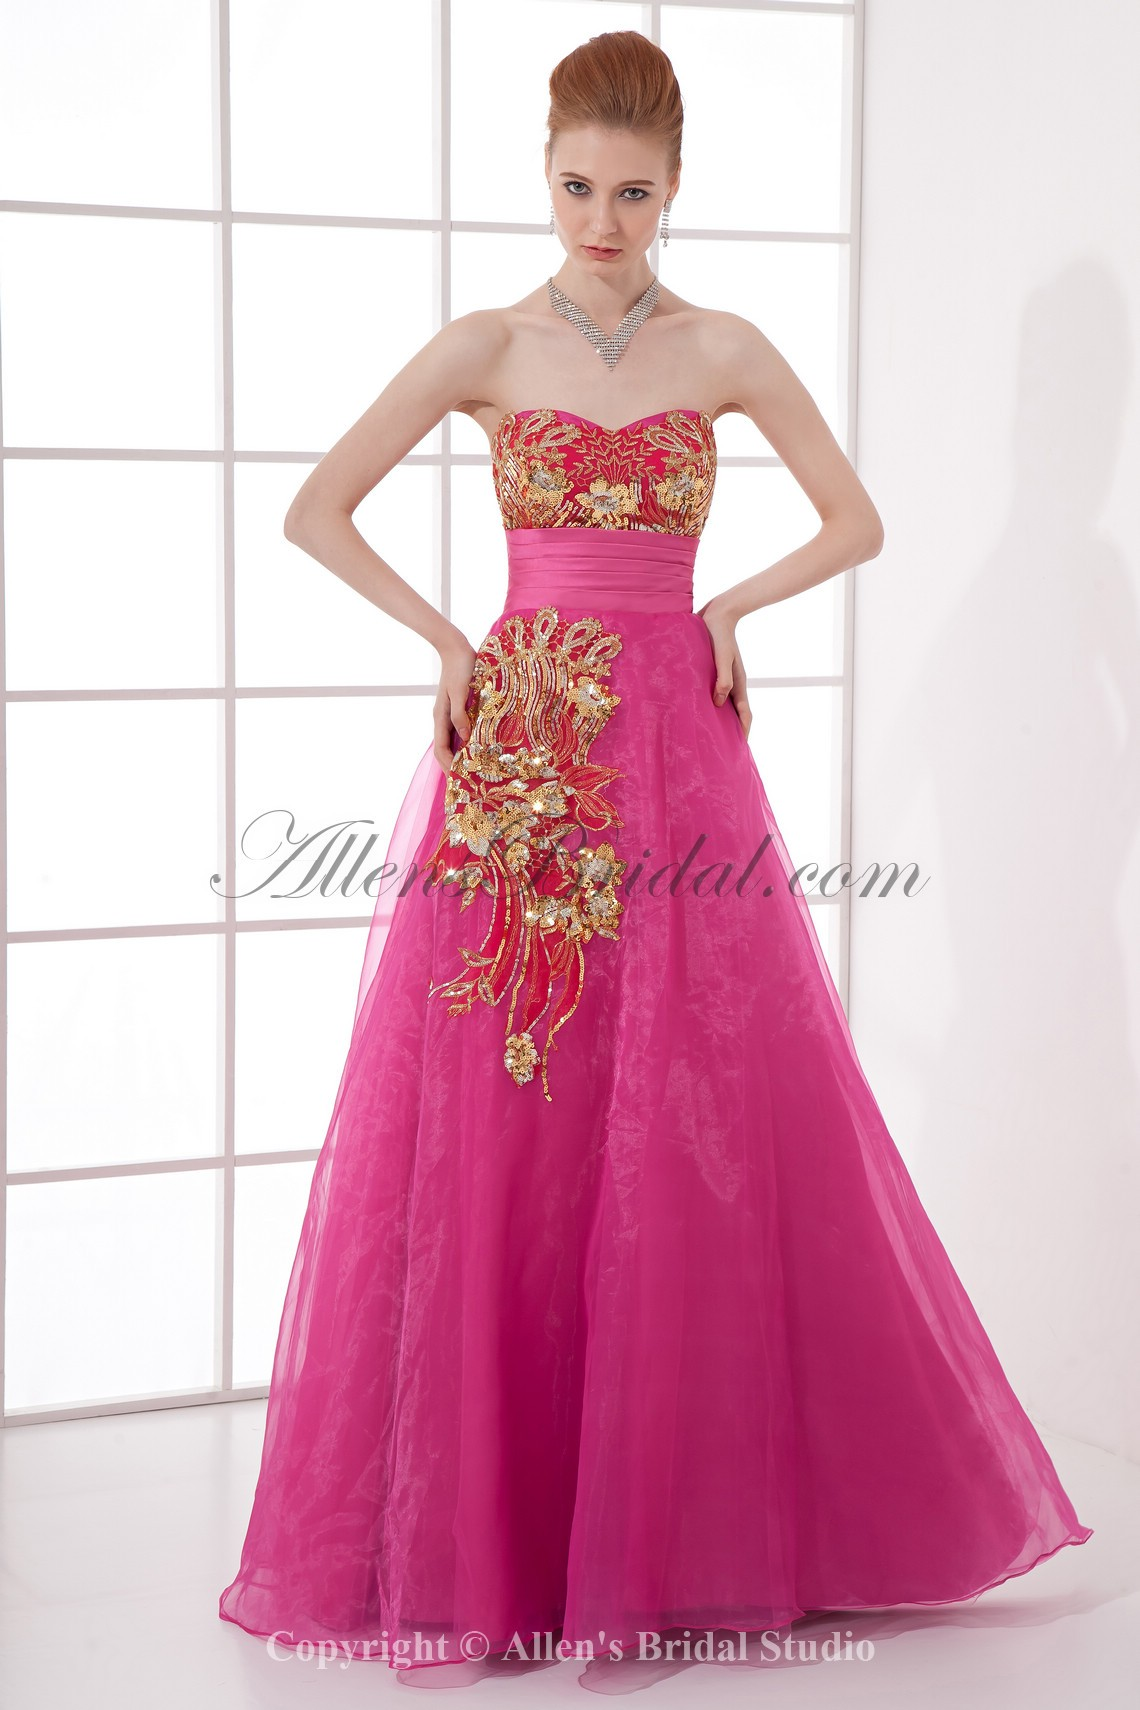 /105-833/organza-sweetheart-neckline-a-line-floor-length-embroidered-prom-dress.jpg